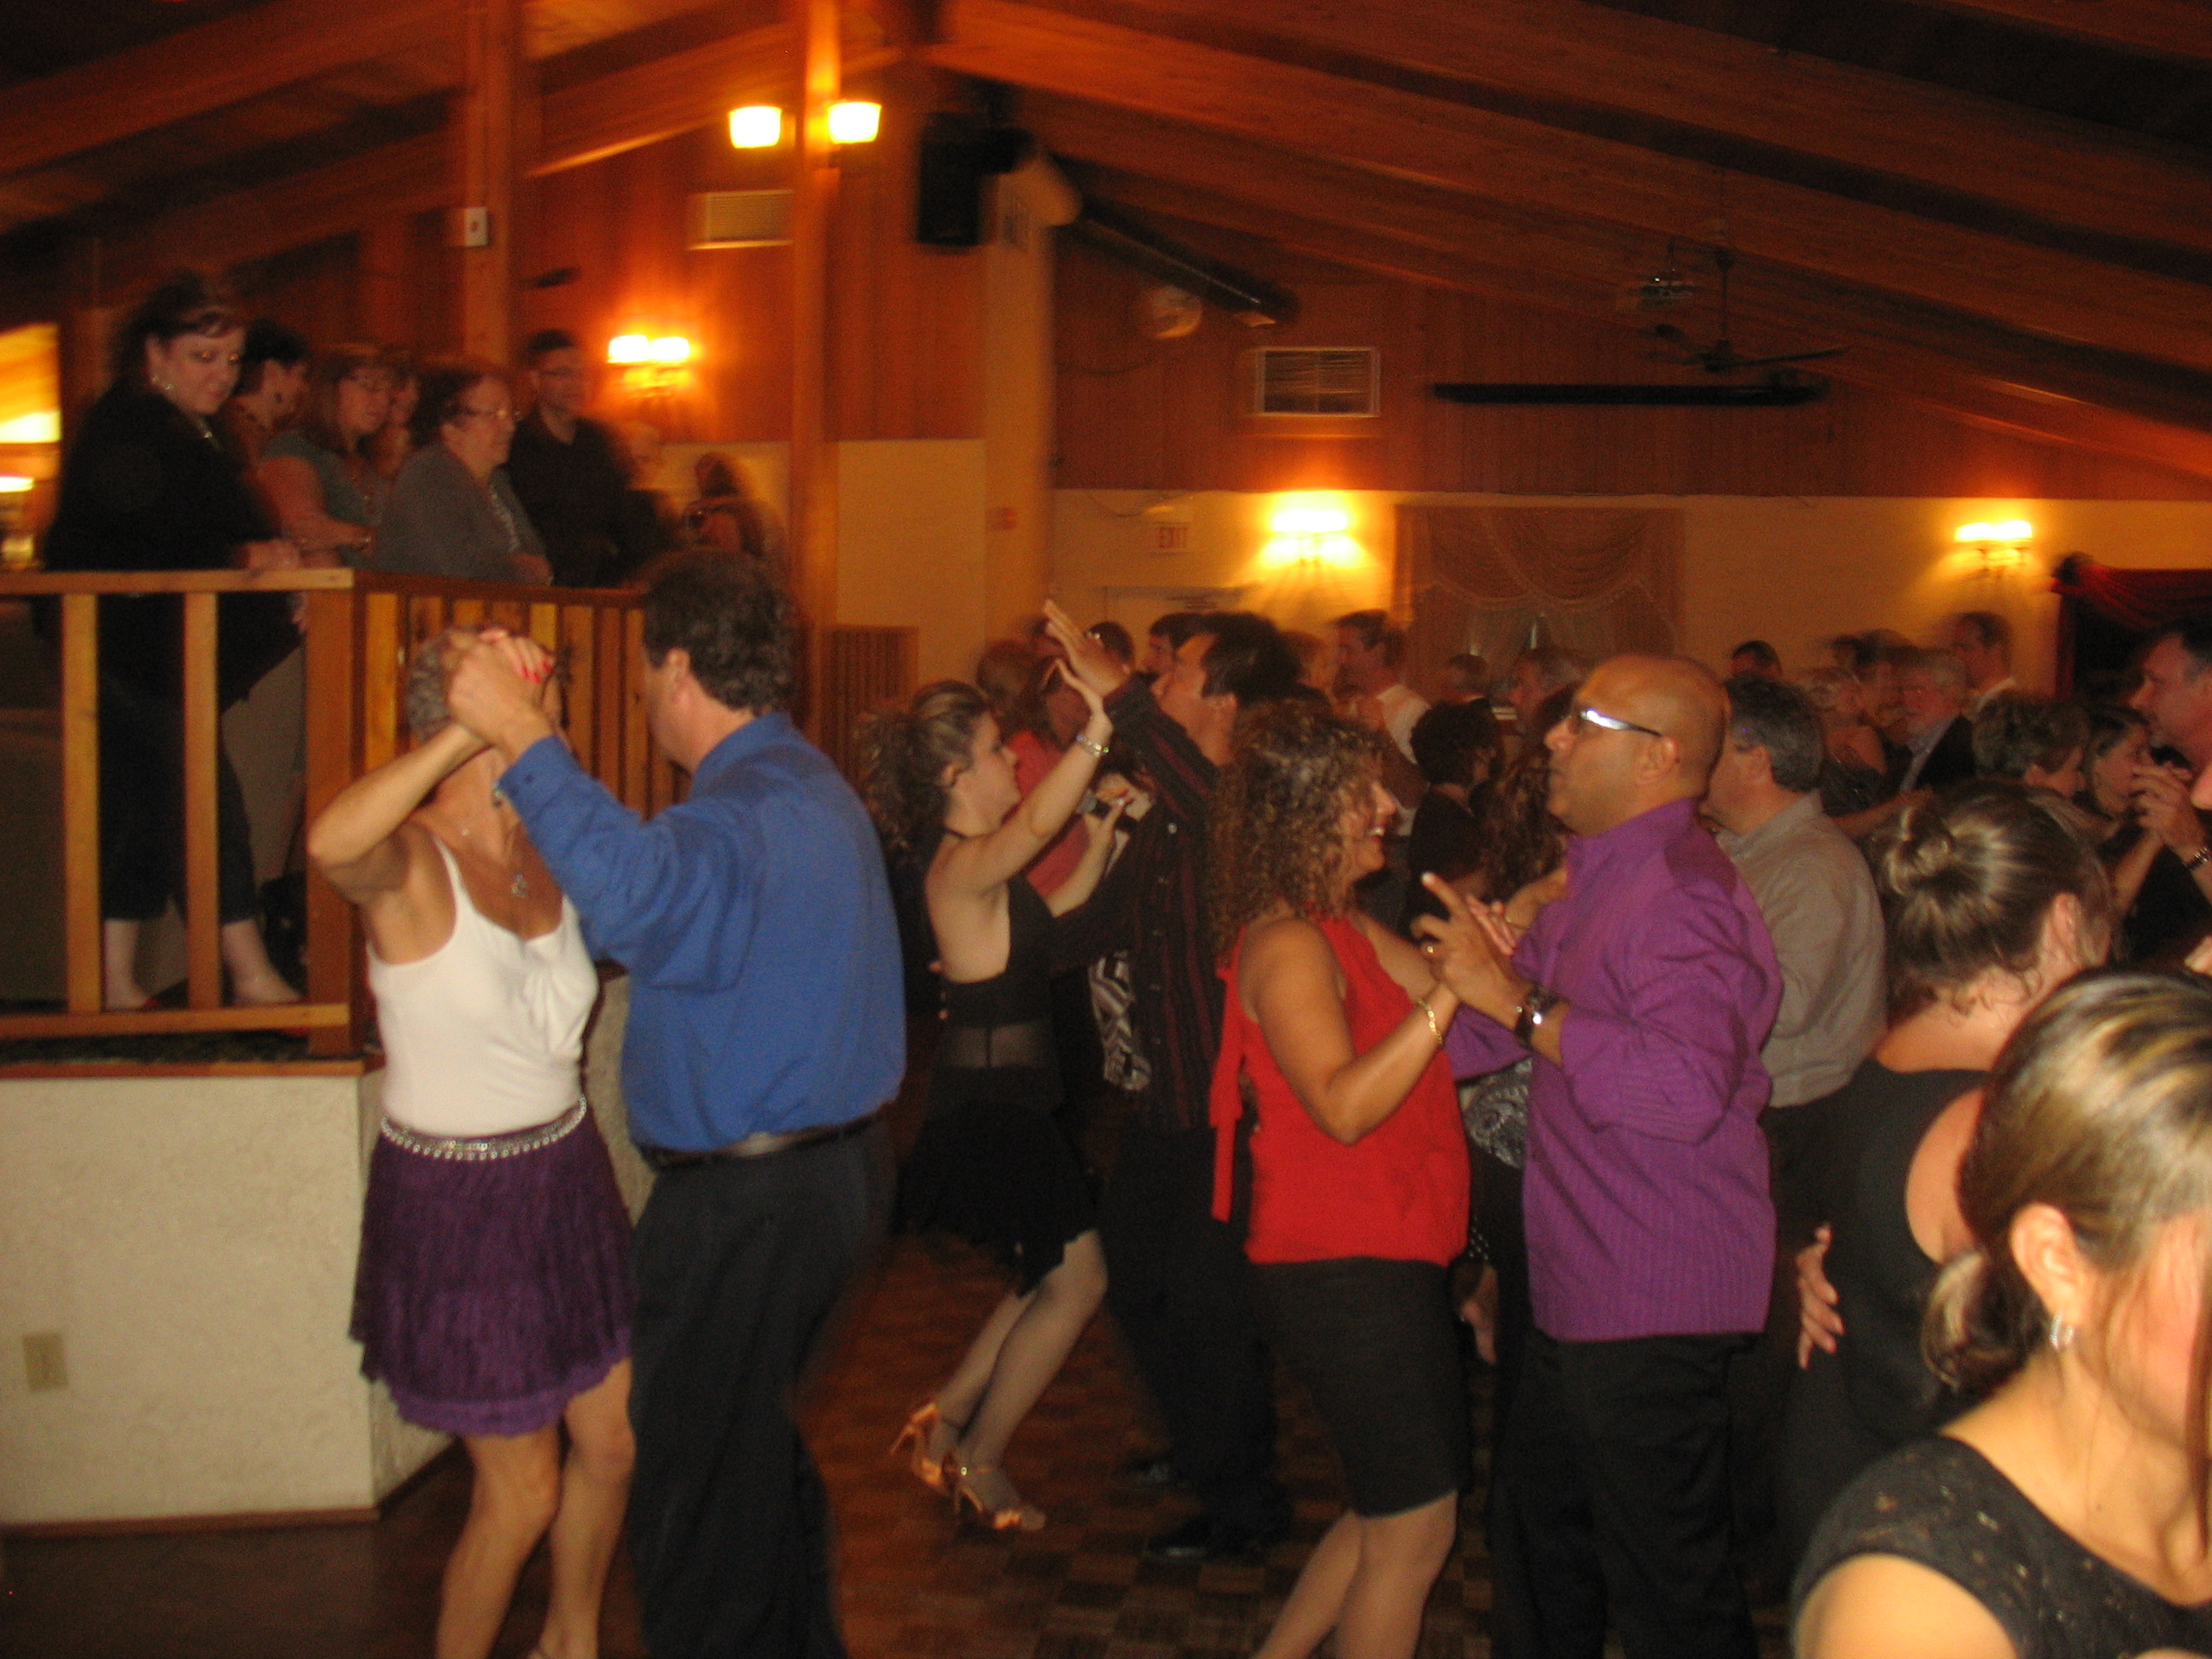 danceScape at Milton Salsa/Latin Fridays, Grand Chalet